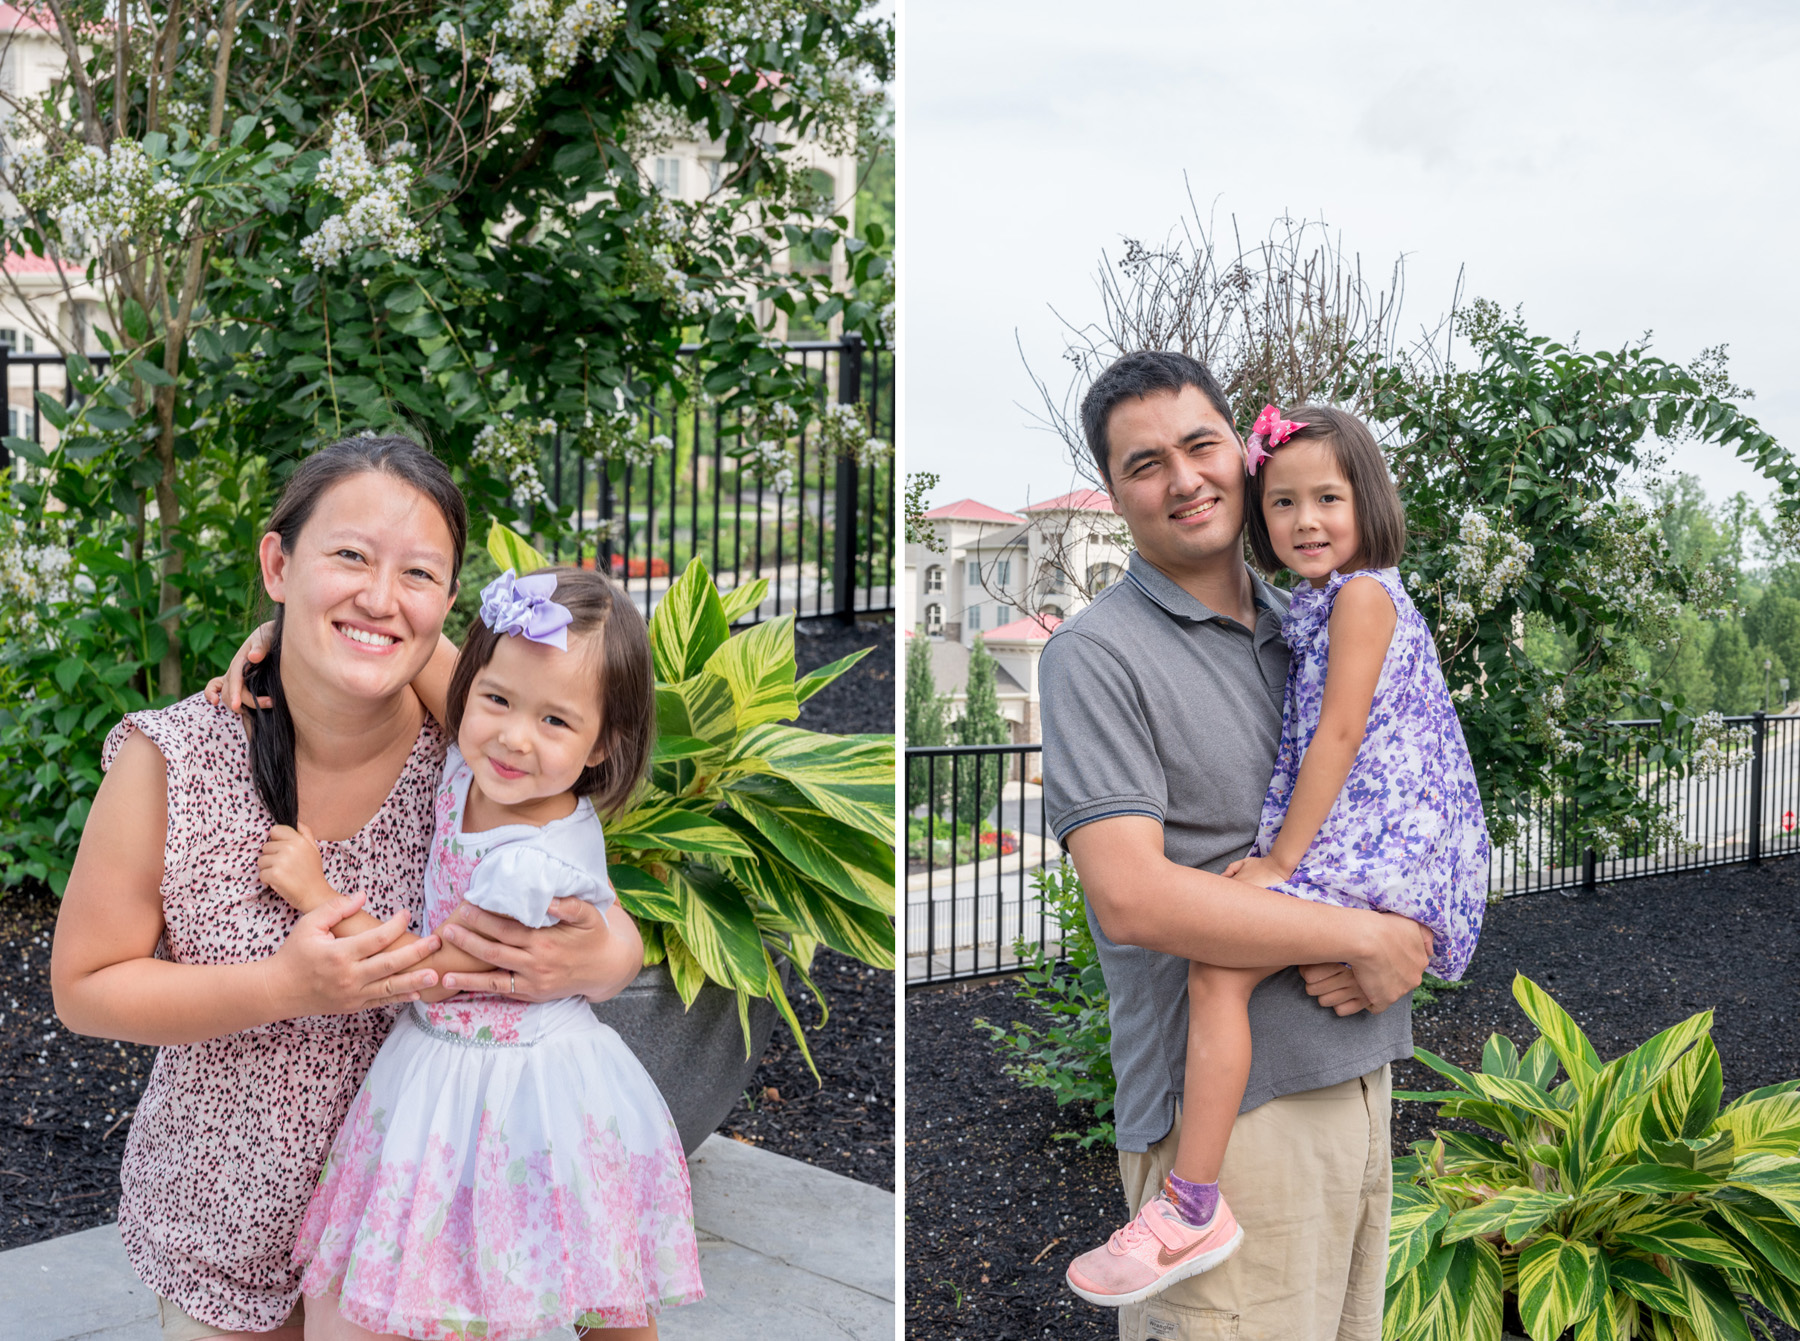 Philadelphia area family photographer Melanie Weitzenkorn Photography